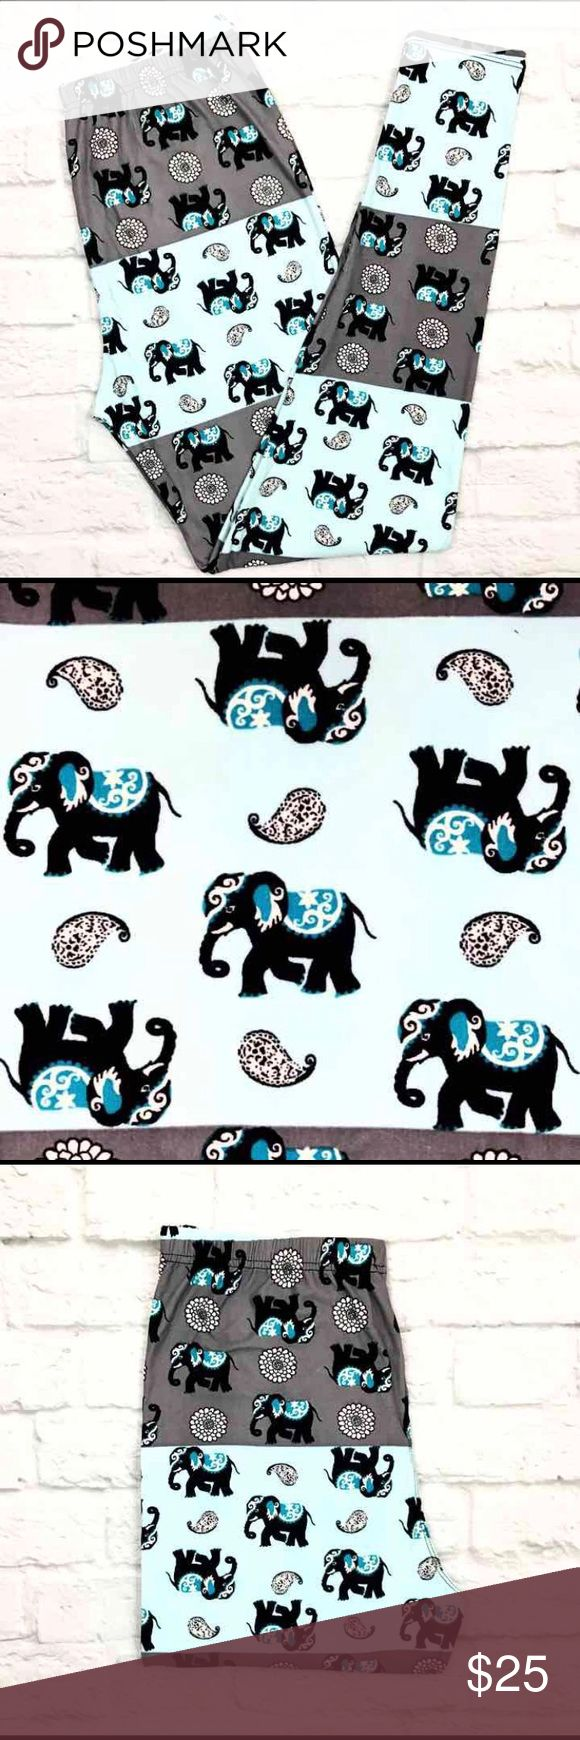 Buttery Soft Elephant Safari Leggings Plus Size TC BUTTERY SOFT ELEPHANT SAFARI LEGGINGS Size: Plus Size (Similar to Tall & Curvy) Numeric Size: 10-18 Waistband: Elastic THESE ARE NOT LULAROE Fabric Blend: 92% Polyester 8% Spandex (Same Blend as Lularoe) Brand New - Hard to Find Limited Edition Print! Super Soft & Comfy Leggings ~ Just Like Other Brands!! These ARE NOT LuLaRoe Leggings But Fit & Feel Just Like Them! *Ships Within 24 Hours* *Smoke Free Home* ~All Prints Are Limited Edition…